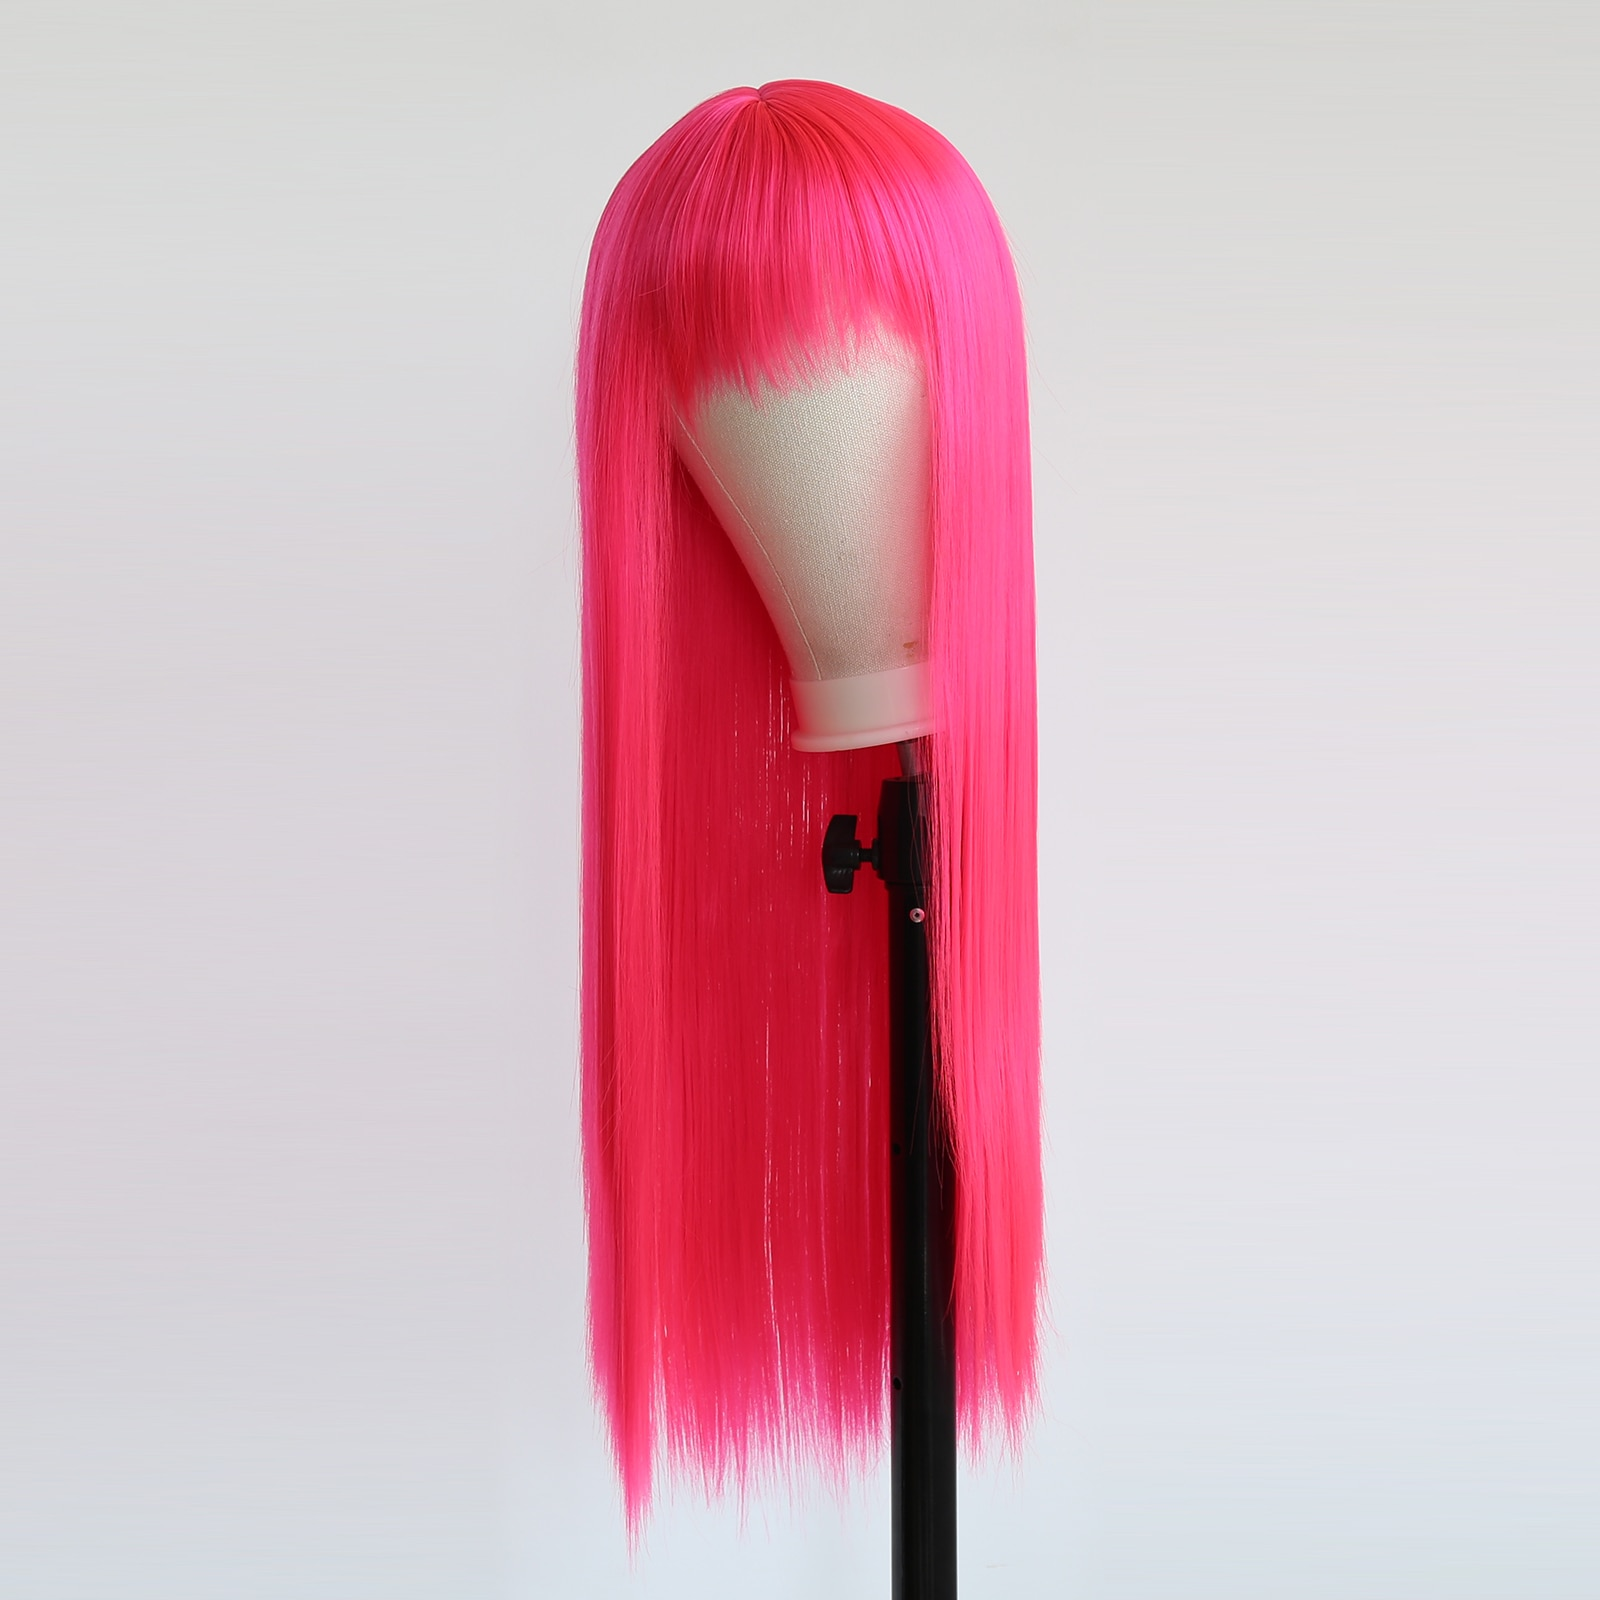 BTWTRY Hot Pink Long Straight Hair Wigs Heat Resistant Synthetic Hair Wigs for Black Women Cosplay Daily Wear